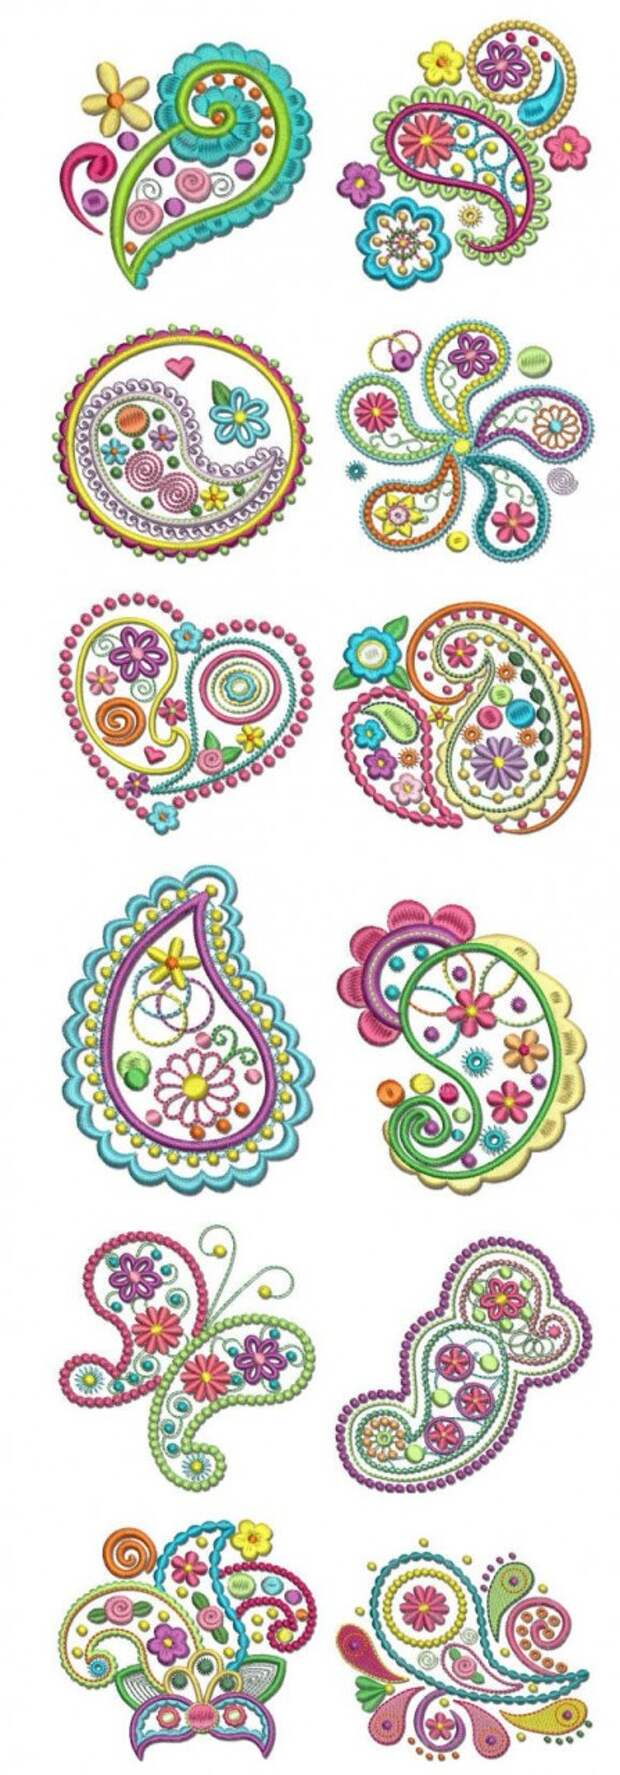 Crazy for Paisley free designs